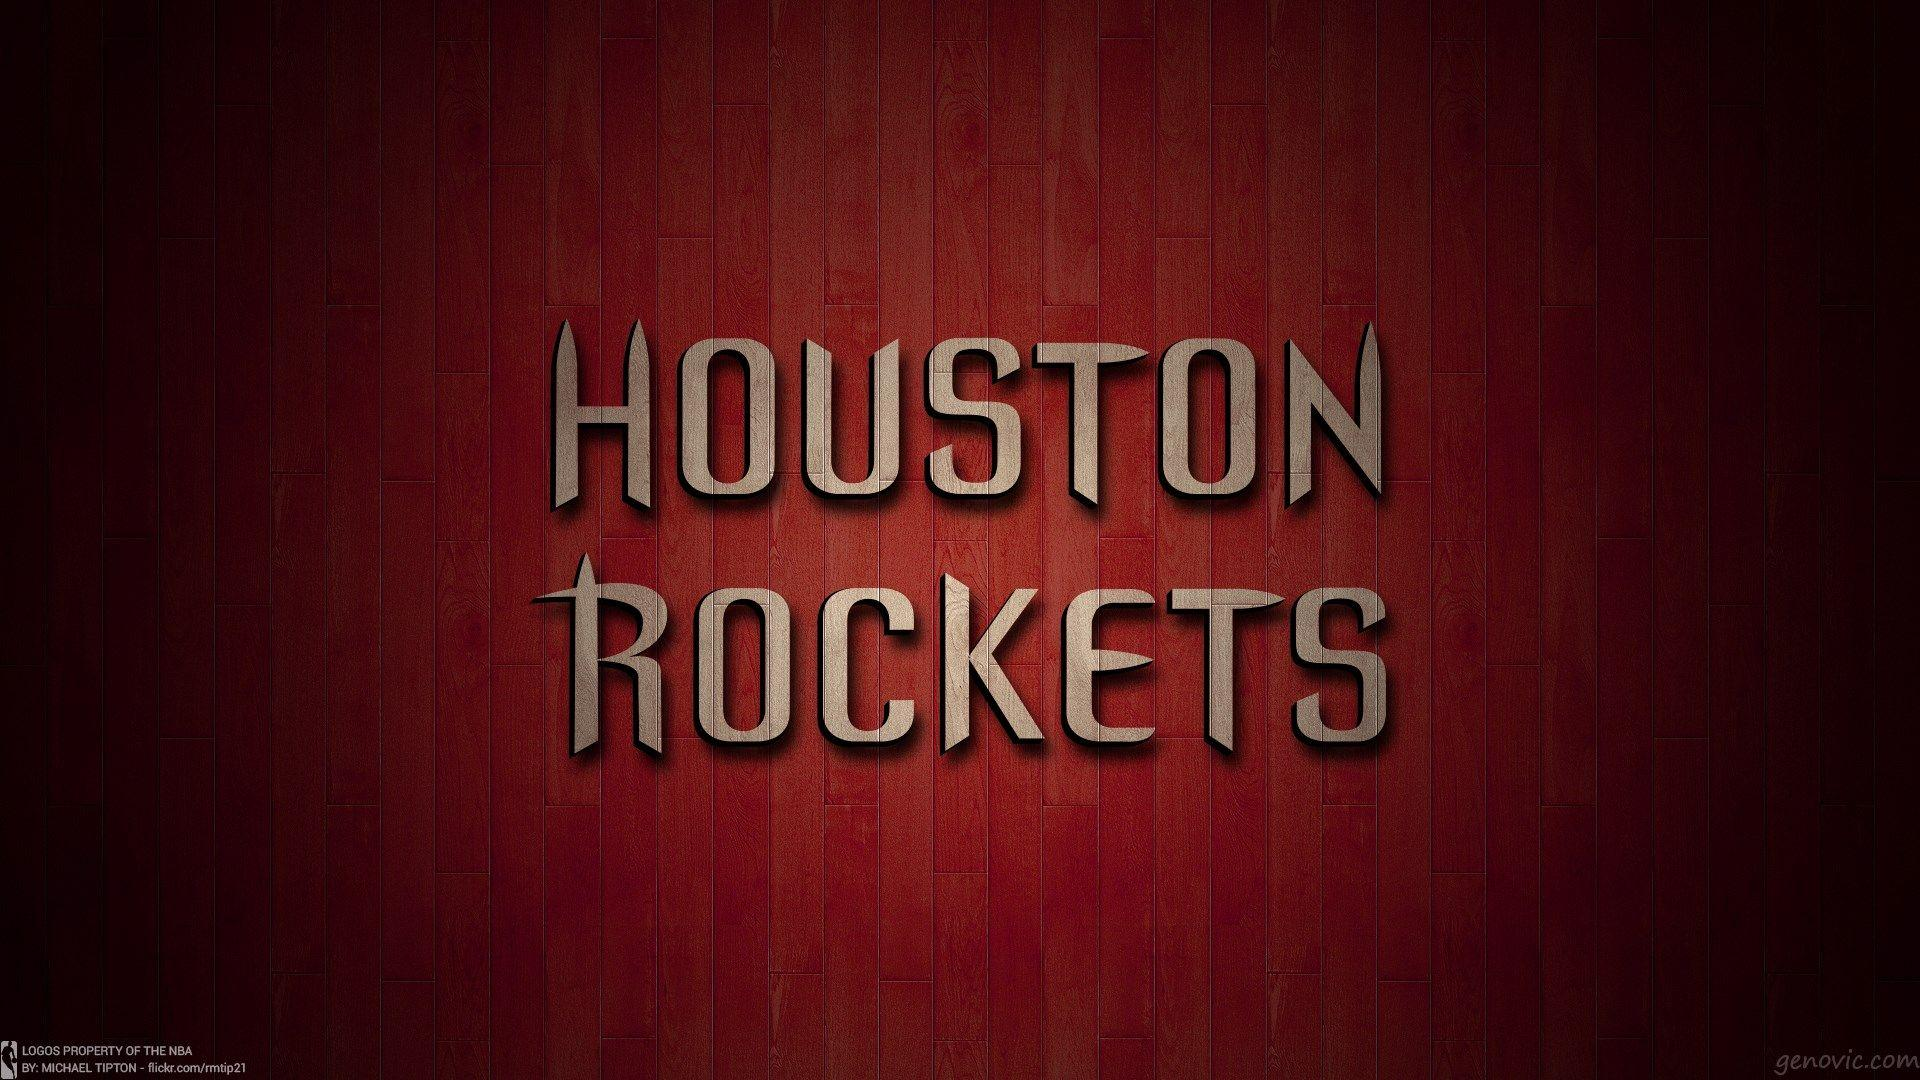 Wallpaper Hd Miami Cars Houston Rockets Wallpapers Wallpaper Cave